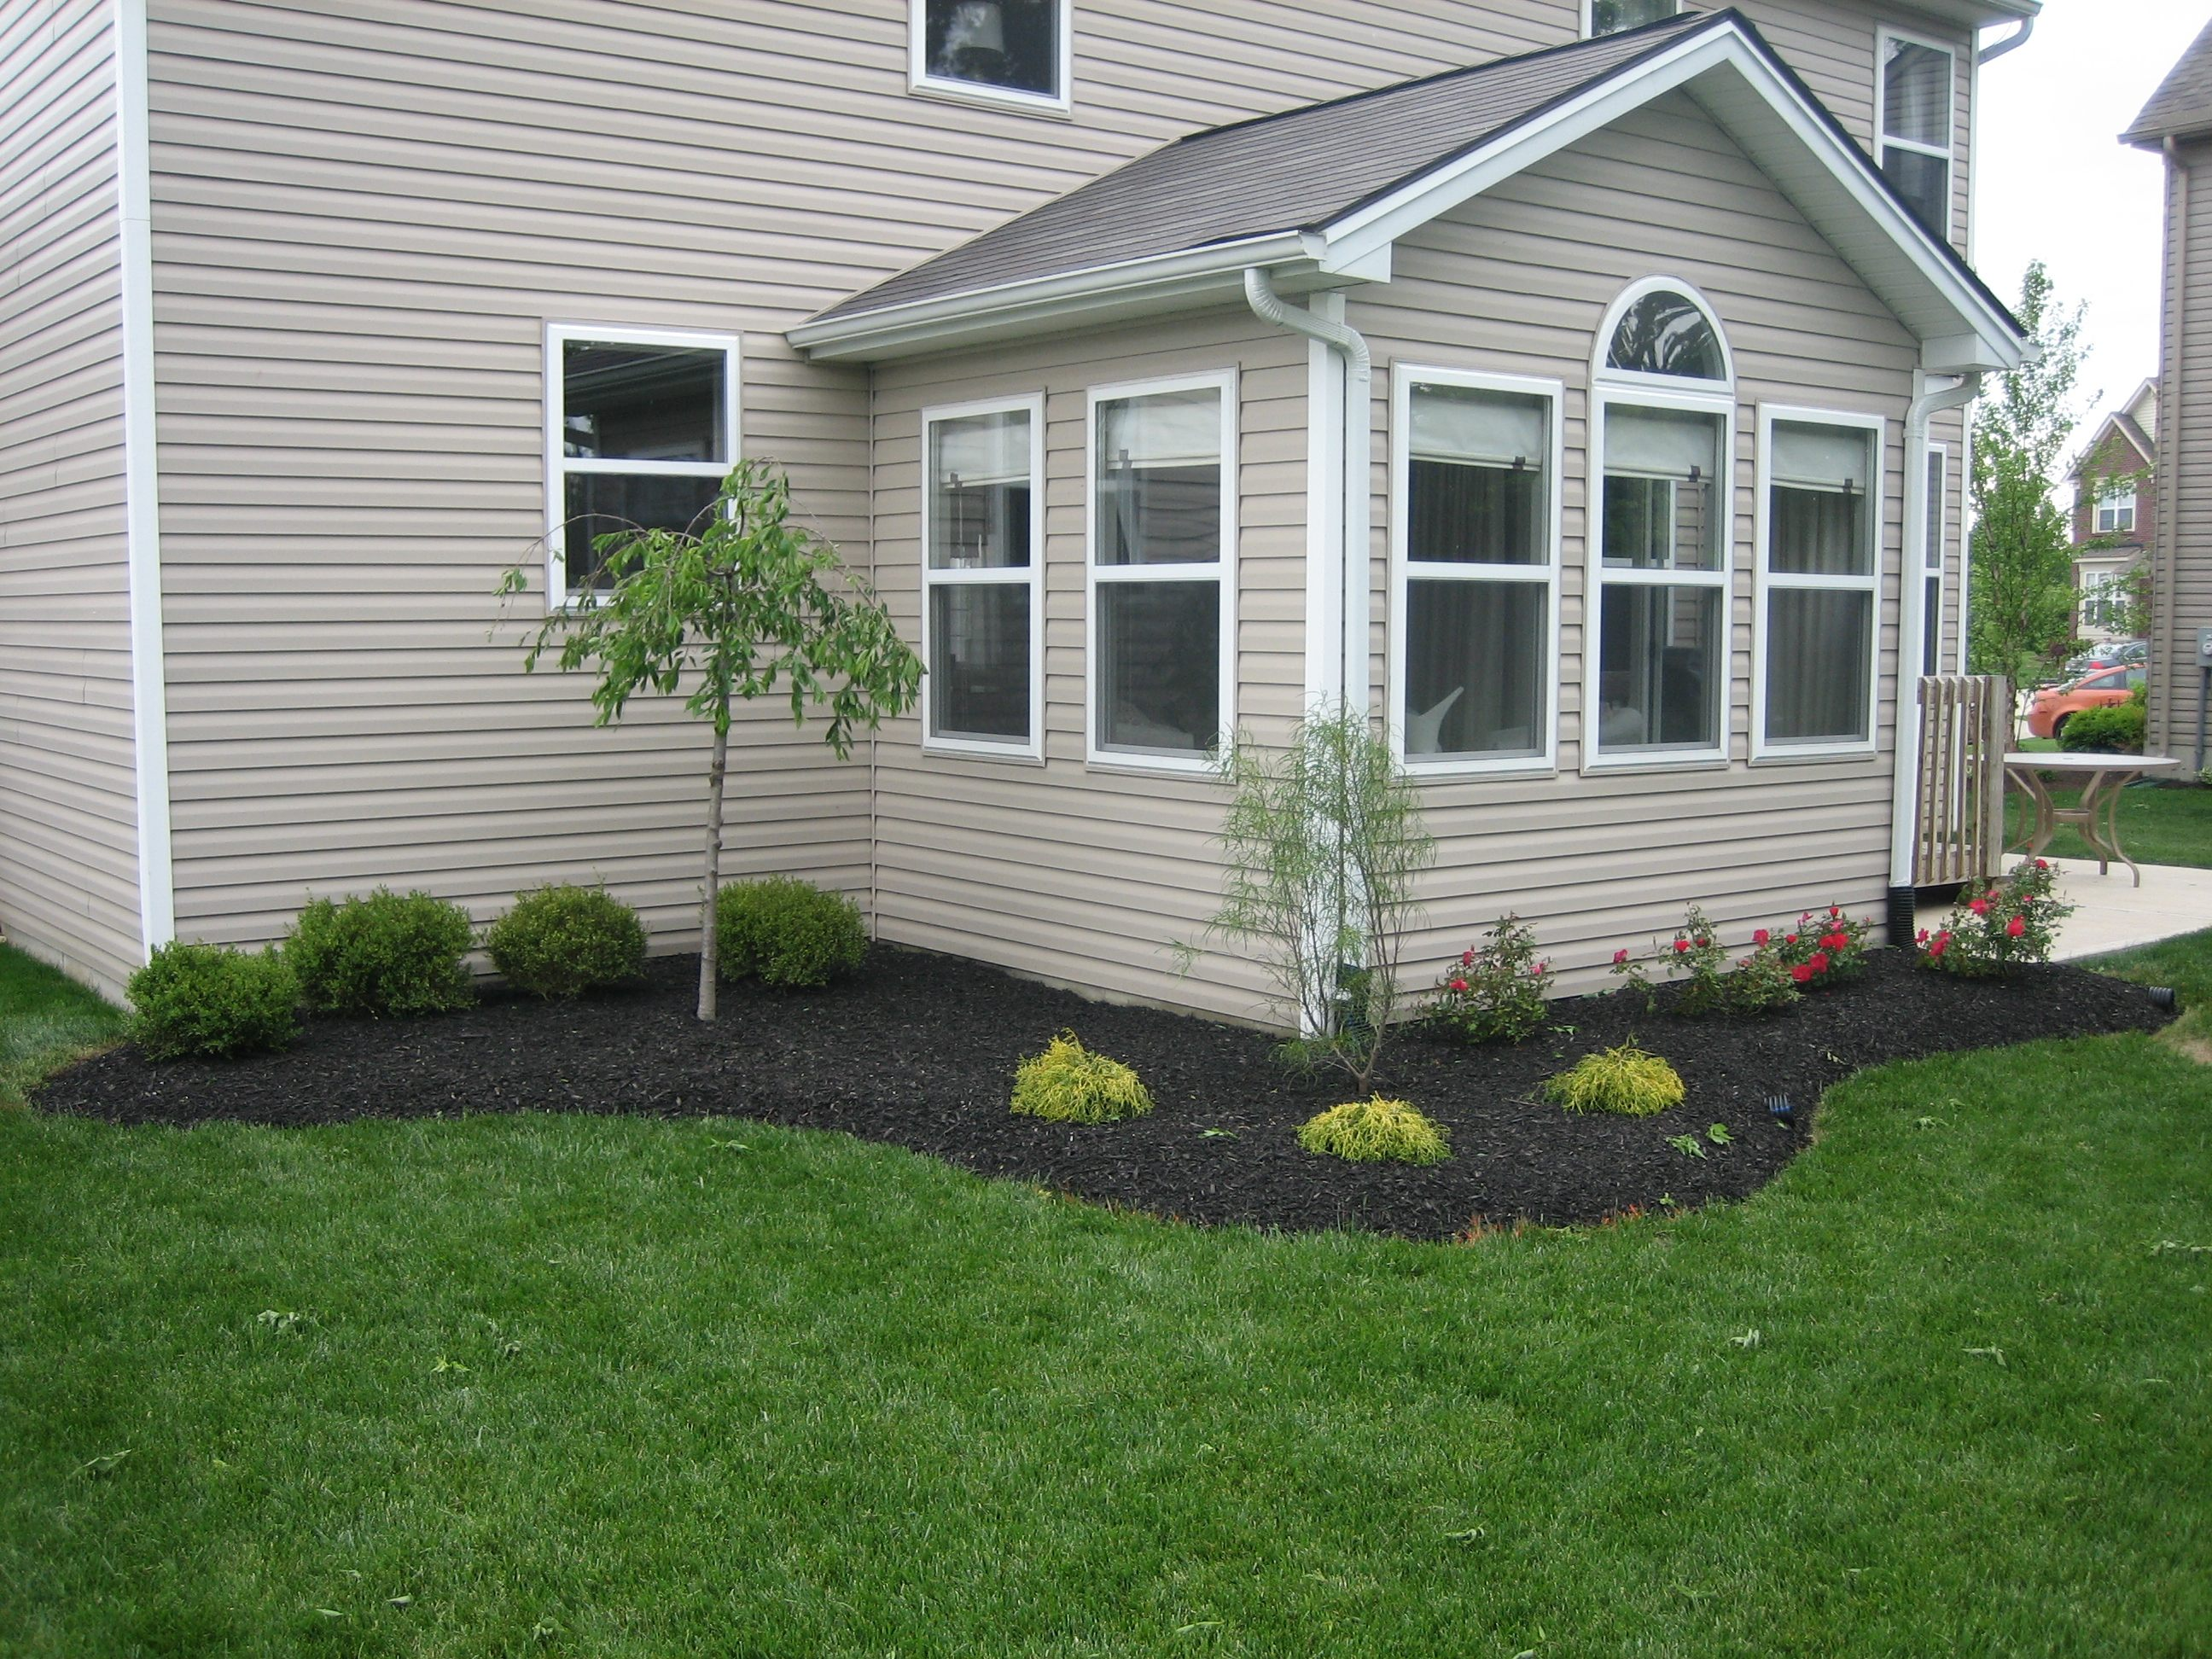 Landscaping Around Home Foundation : House tweaking